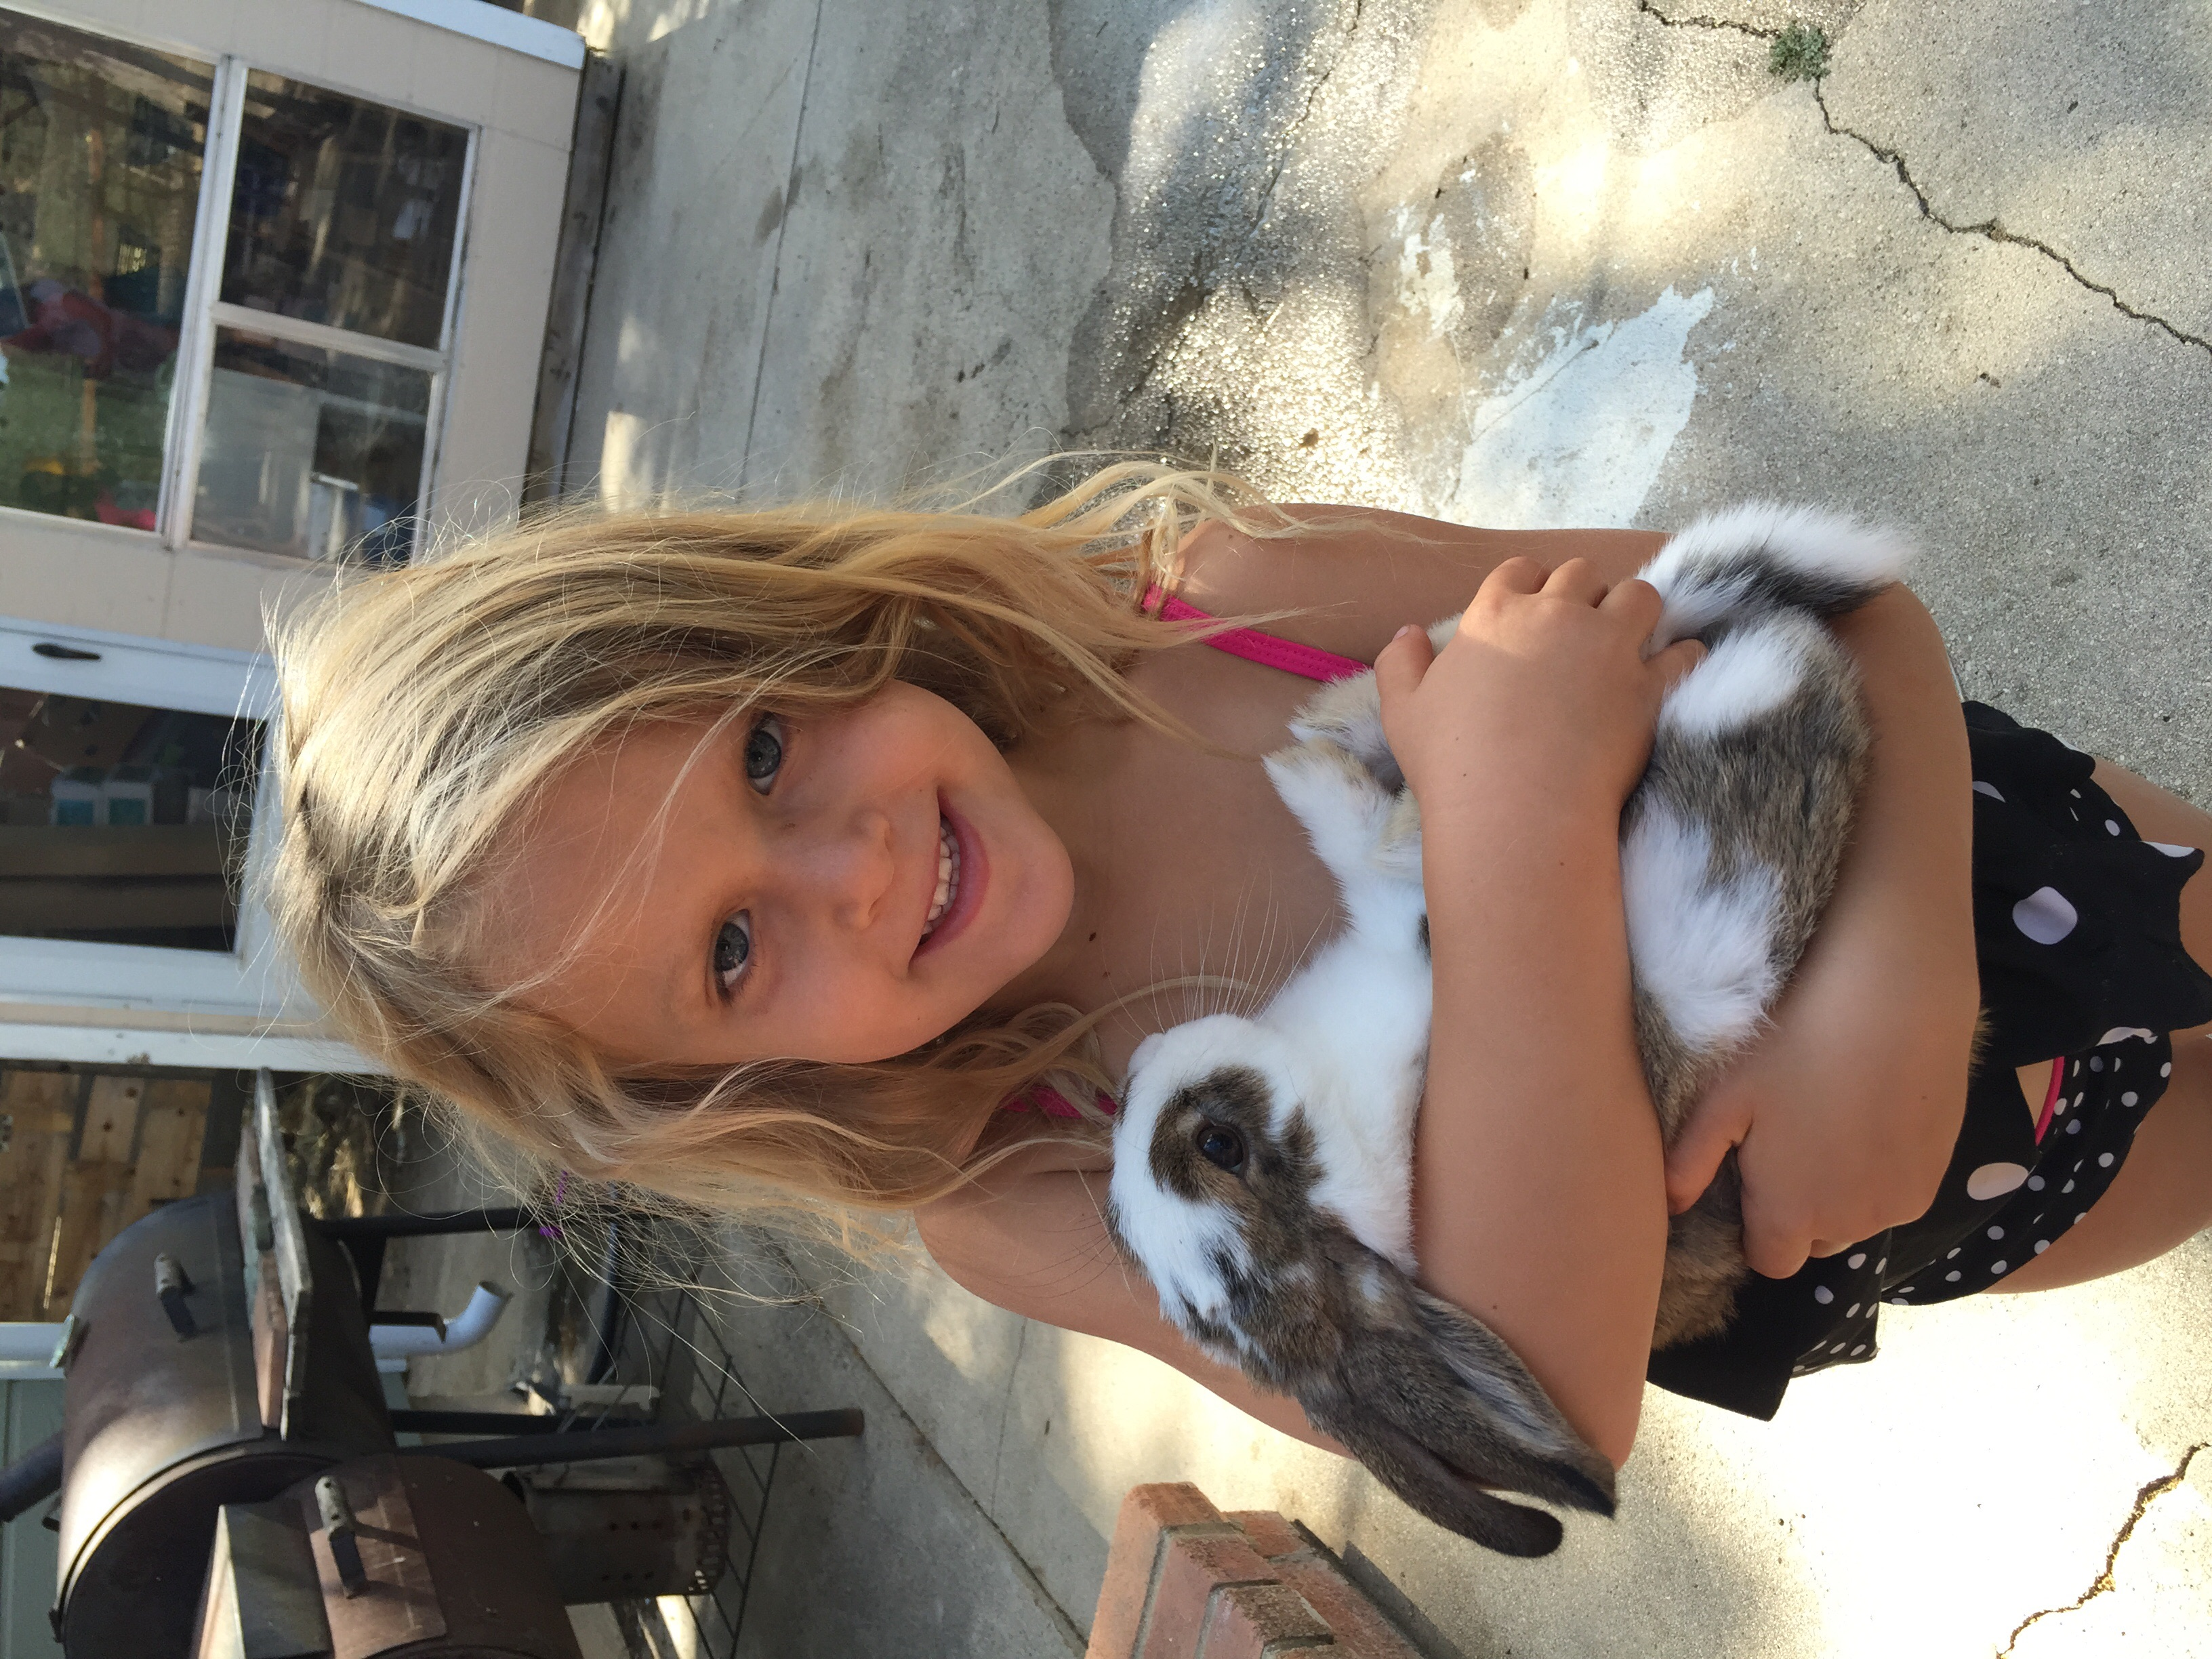 Here's Iris holding the bunny - his name is Snuggles. Moses goes around saying the bunny is his son- Lol!